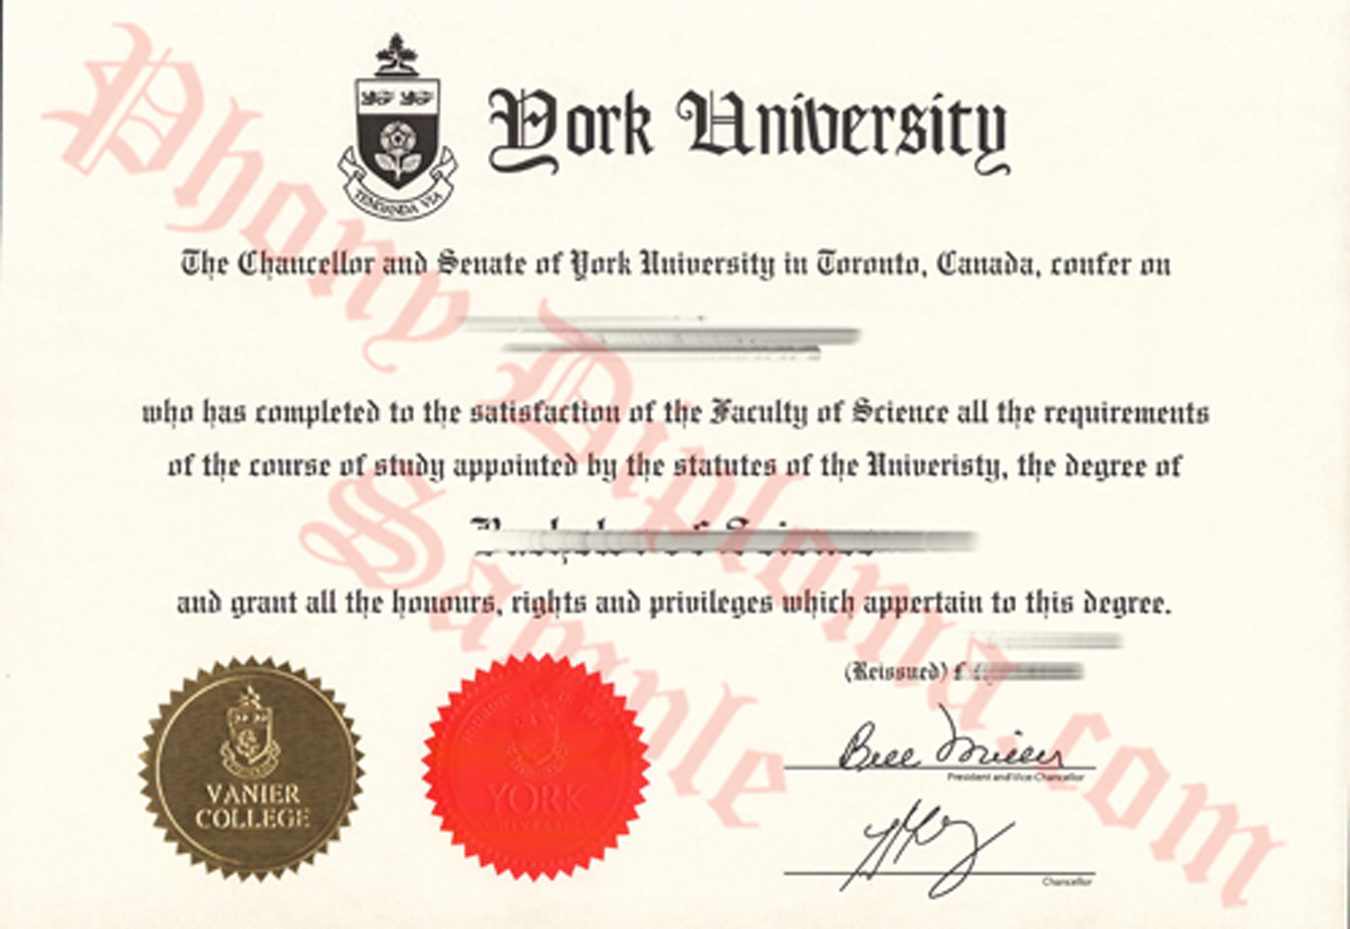 york university bs vanier college fake diploma from canadian school from phonydiploma